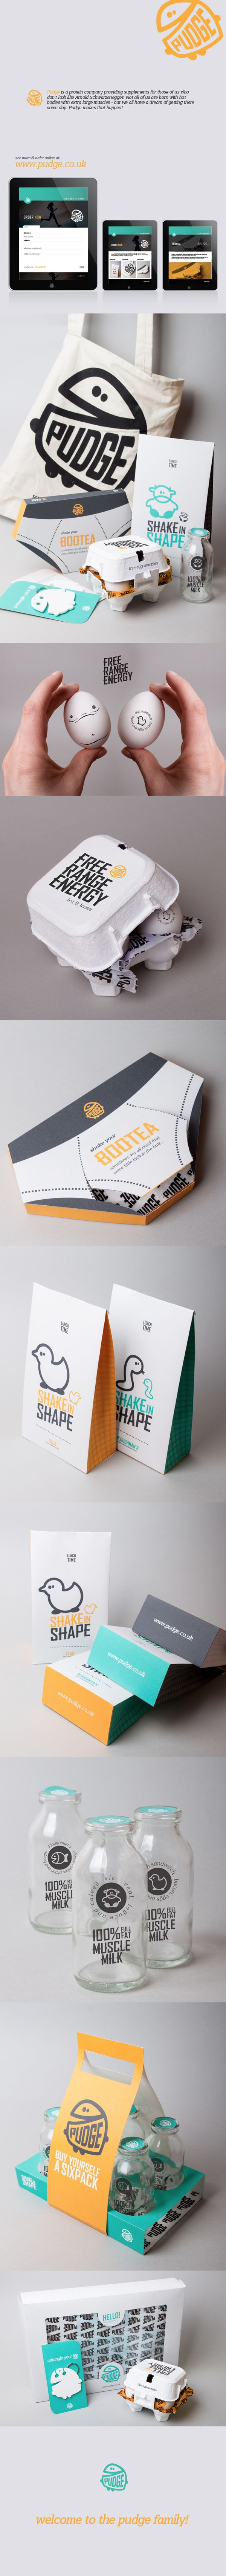 Pudge Protein by Marianne Johnsen, via Behance #identity #packaging #branding #marketing PD